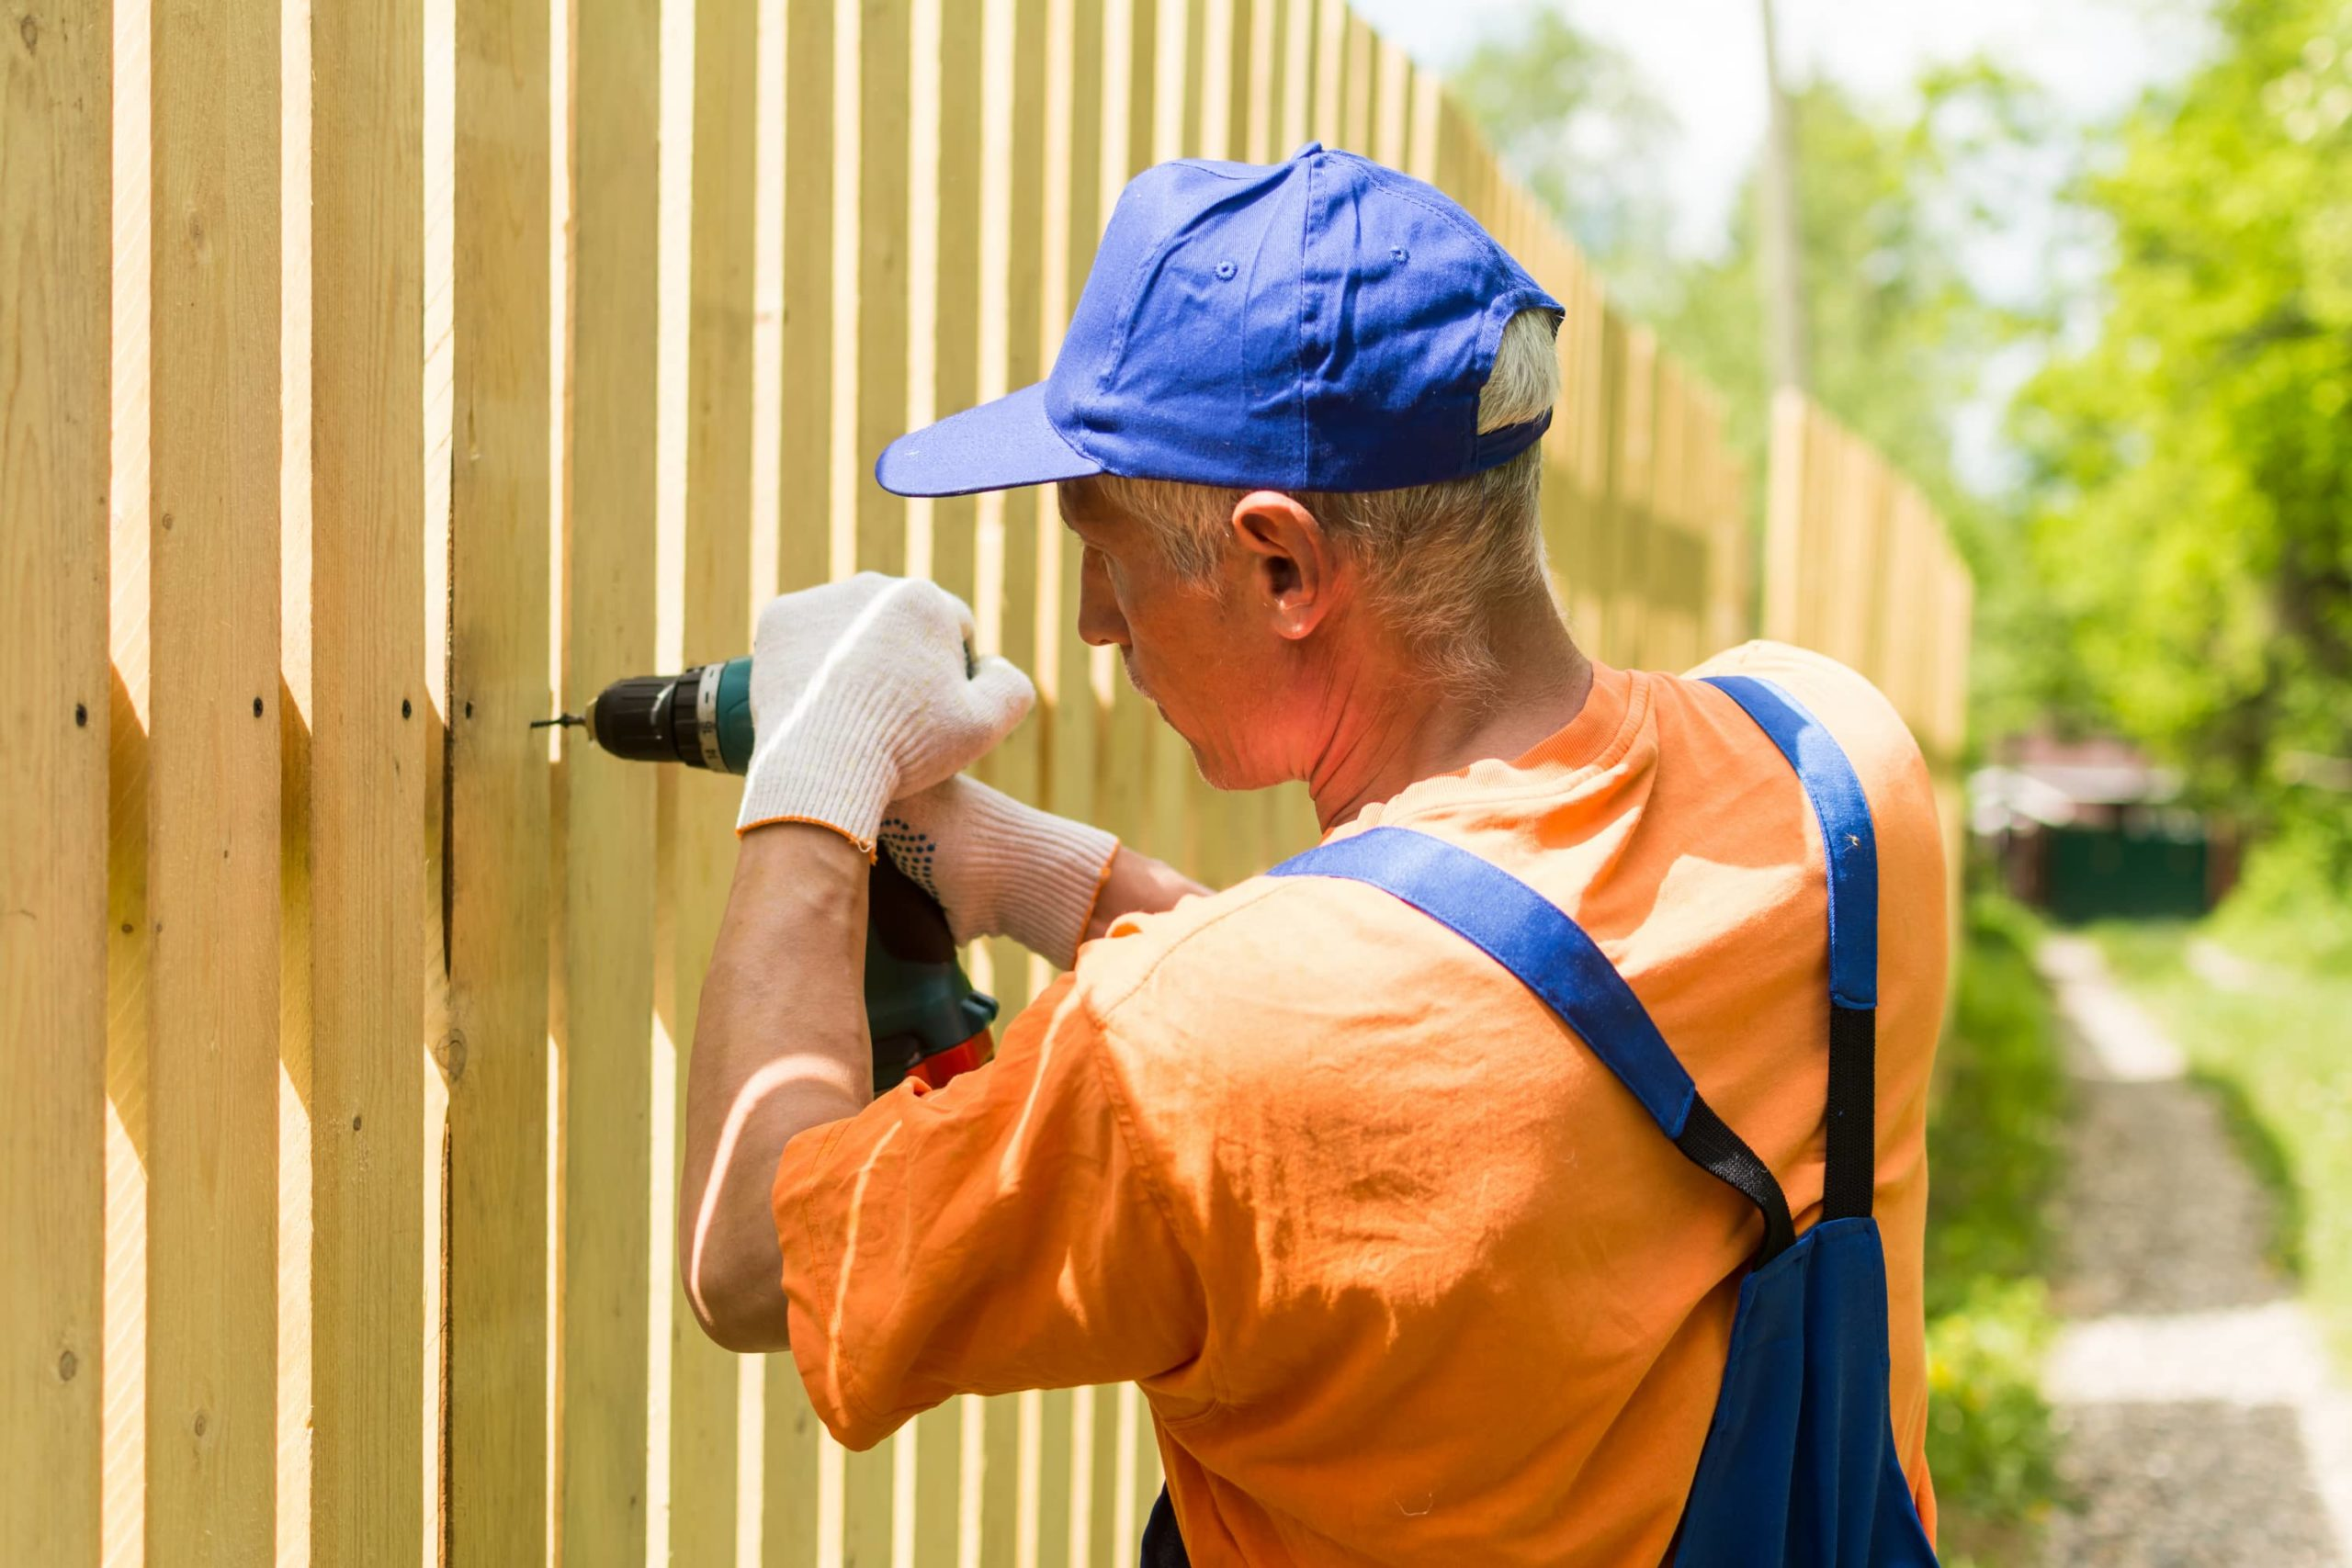 A picture of a man installing fence boards with a power drill.